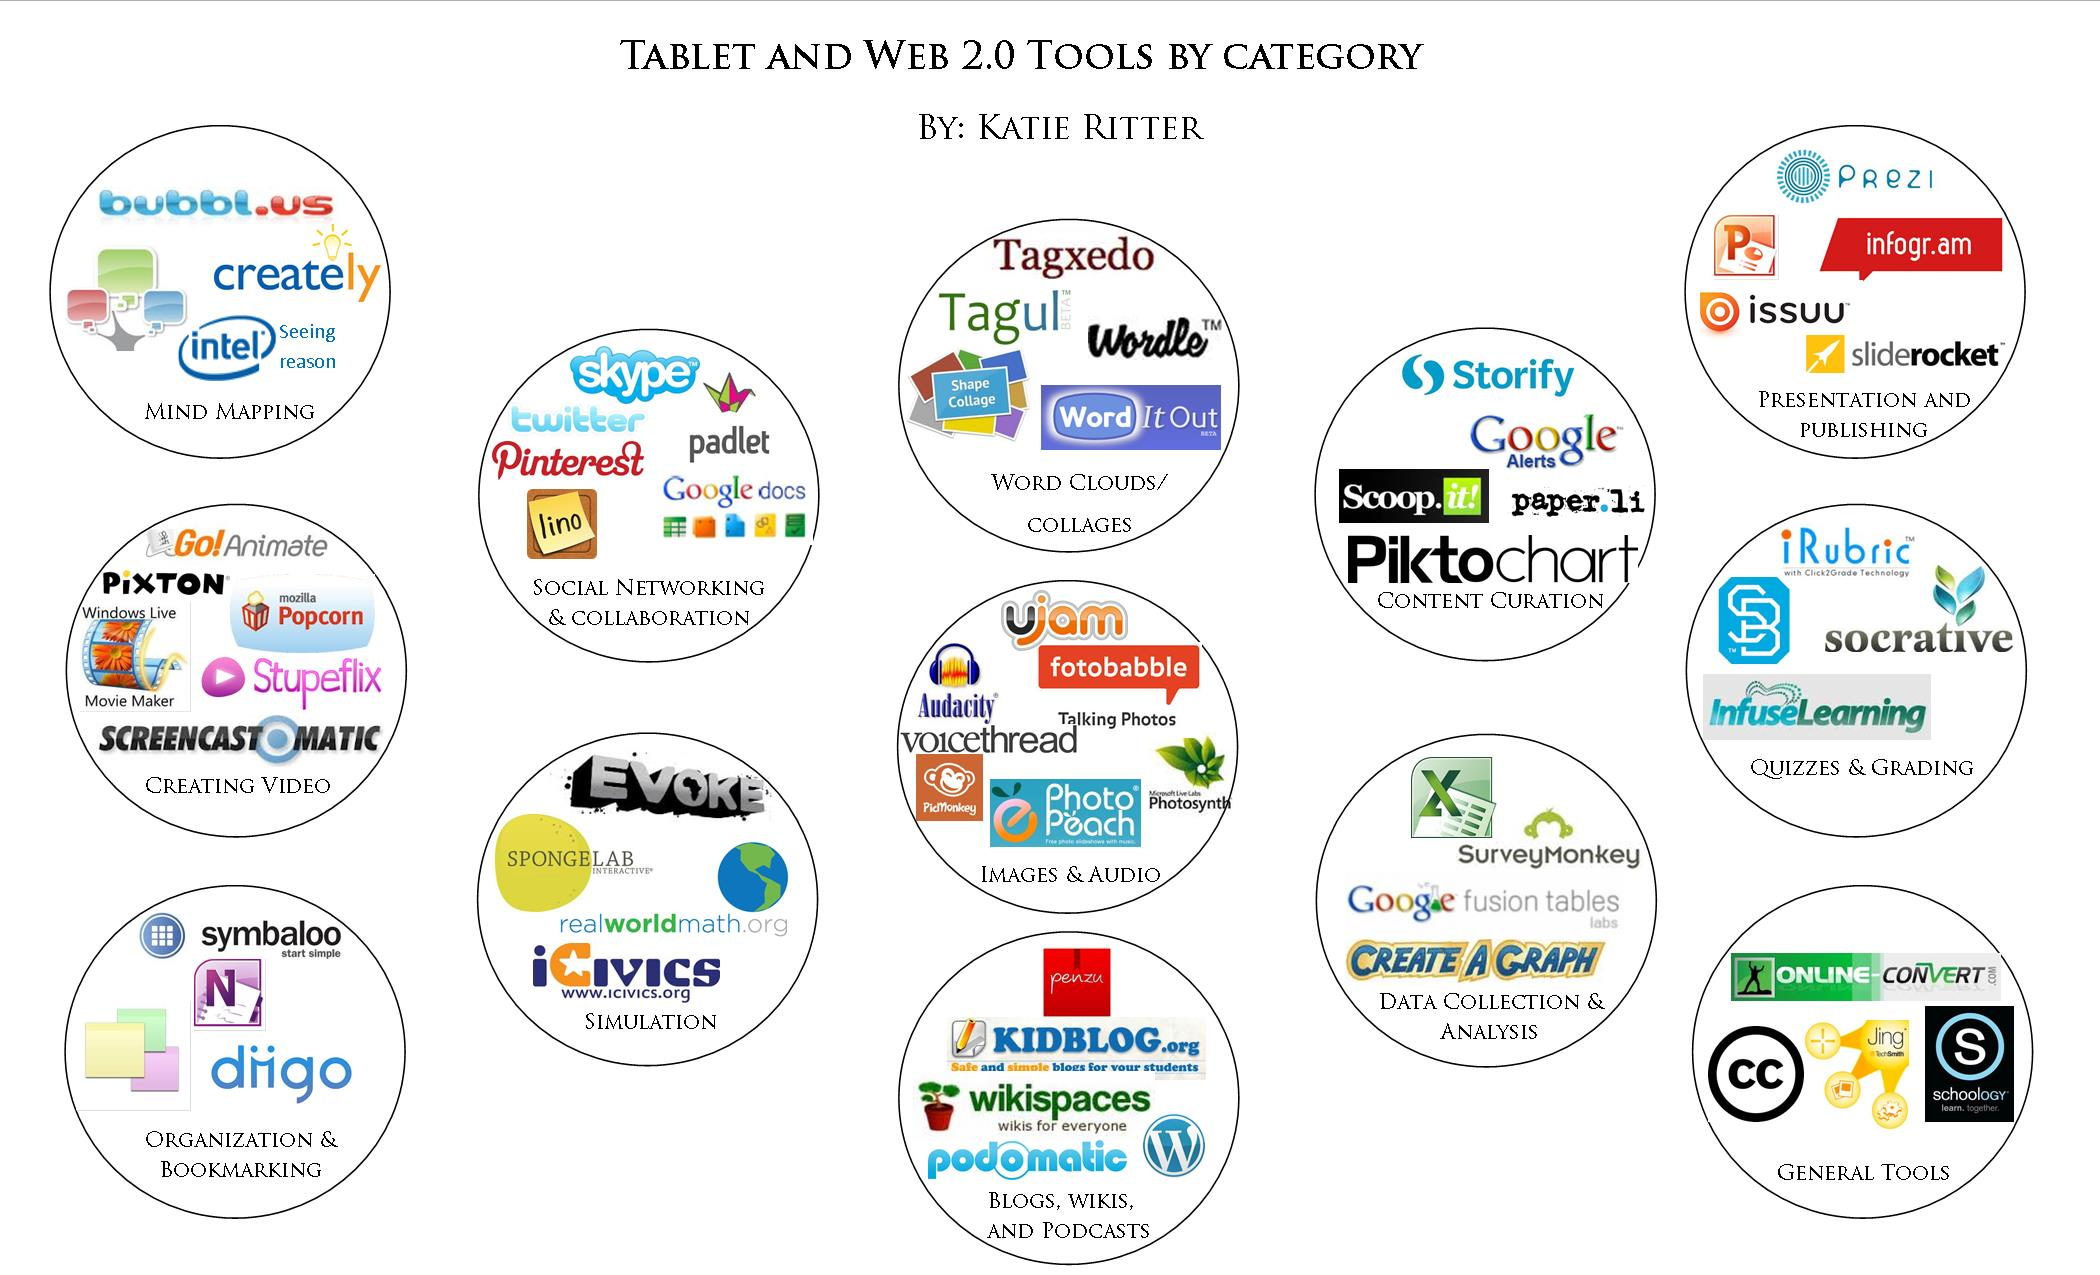 tablet-and-web-2-0-by-category.jpg